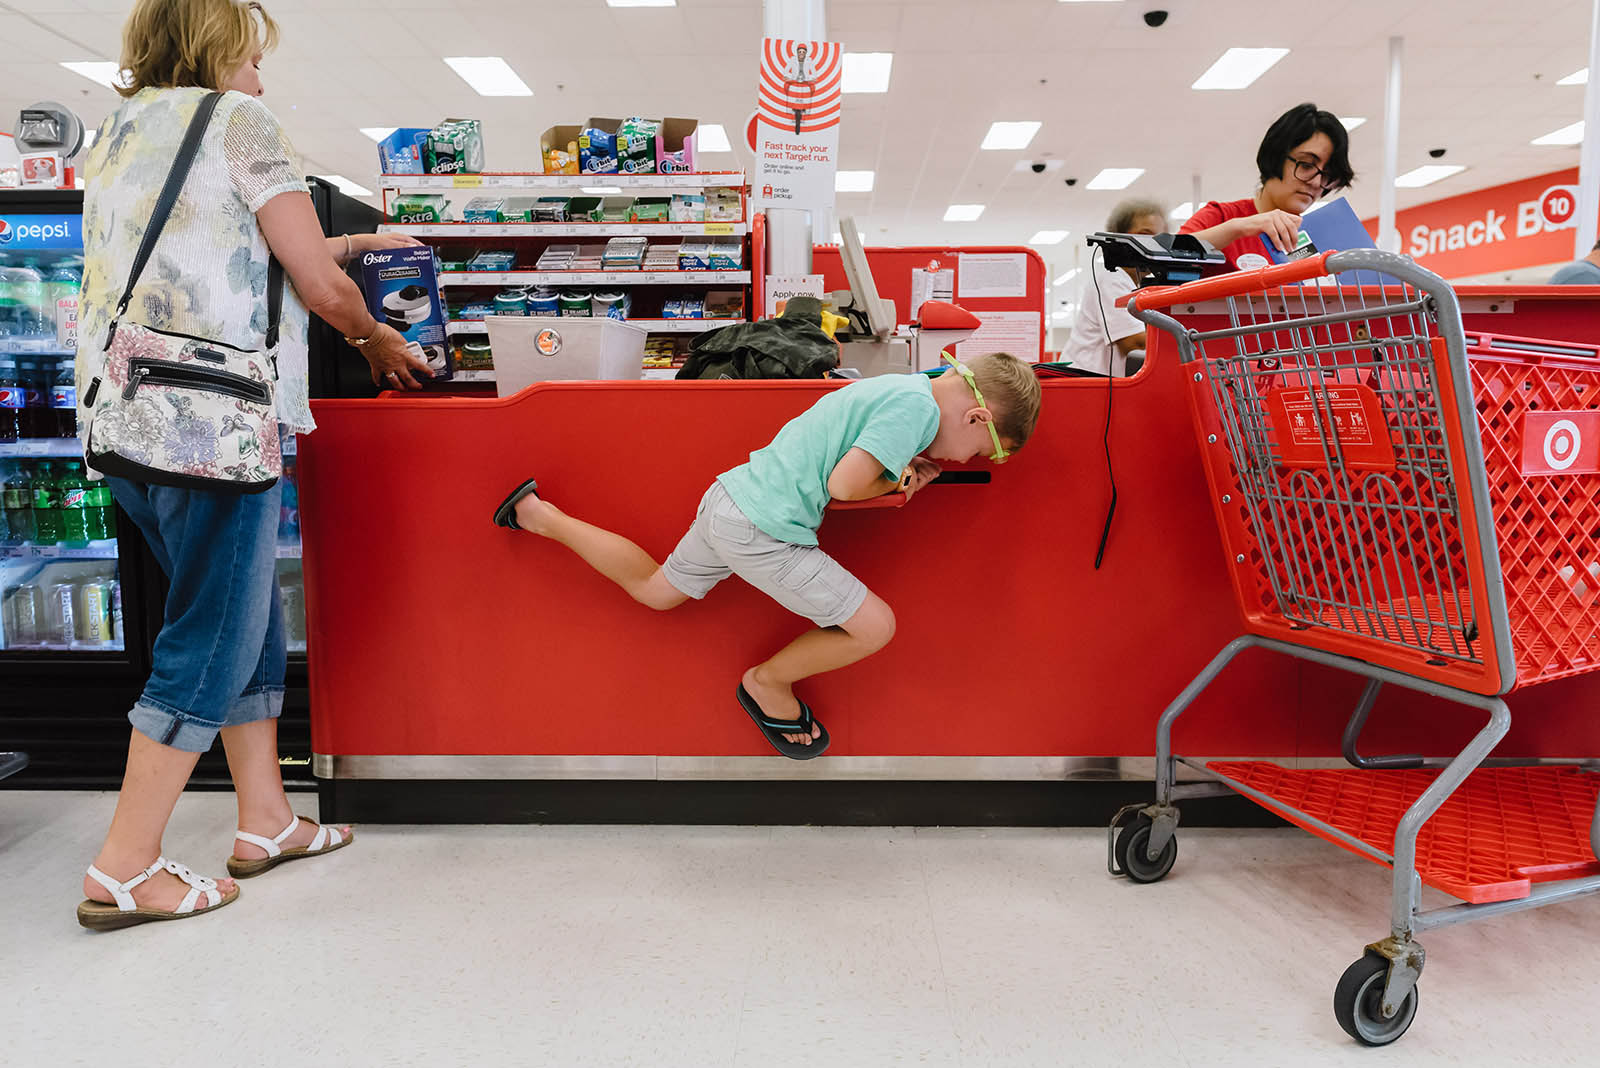 A boy plays in the checkout line at Target - humor in everyday images